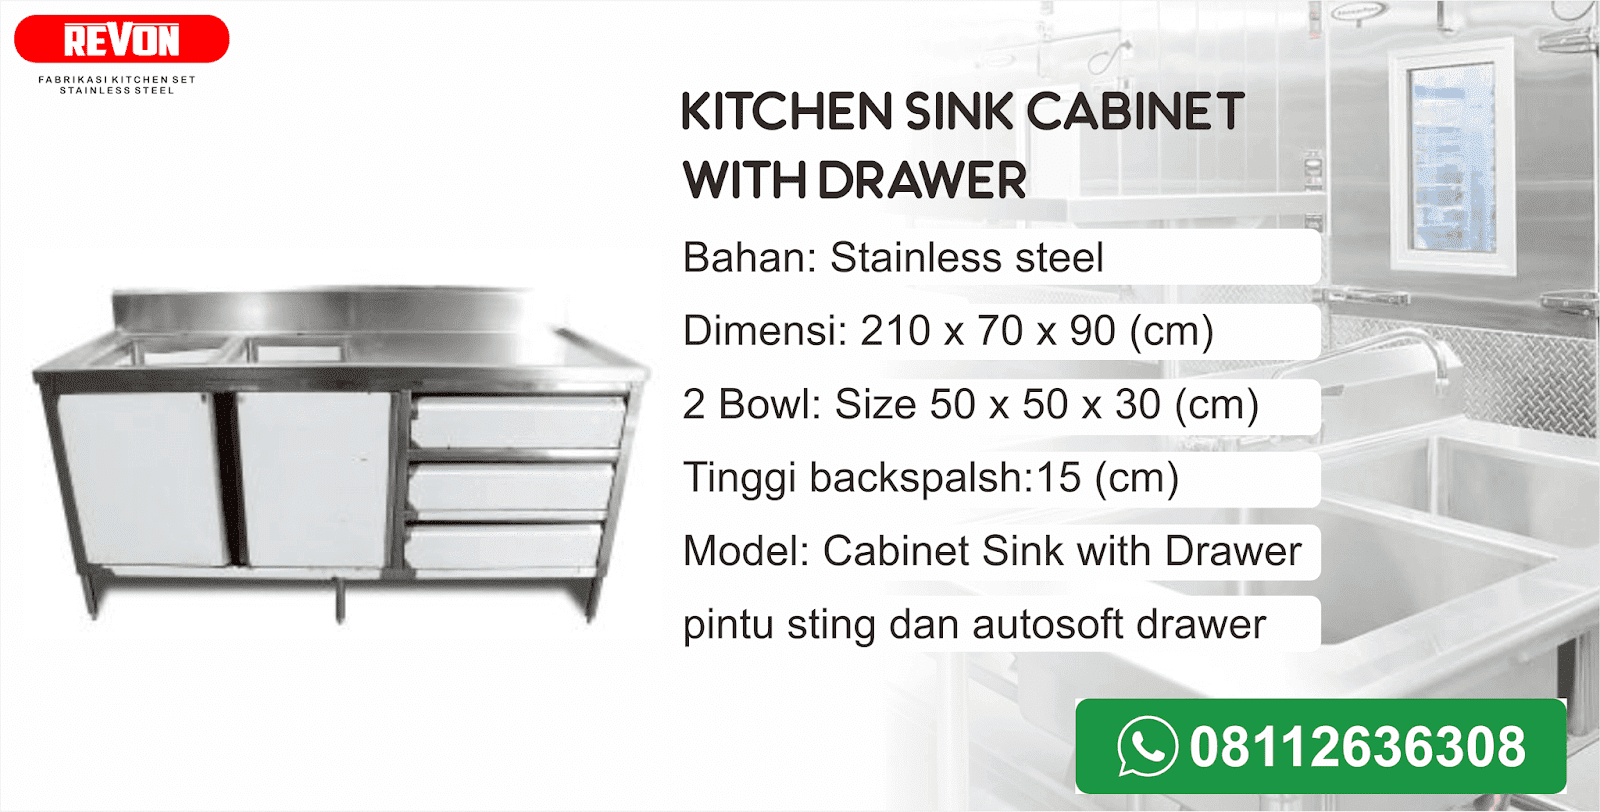 Harga Kitchen Sink Stainless Steel Murah Reymetal Com Produsen Kitchen Set Stainless Resto